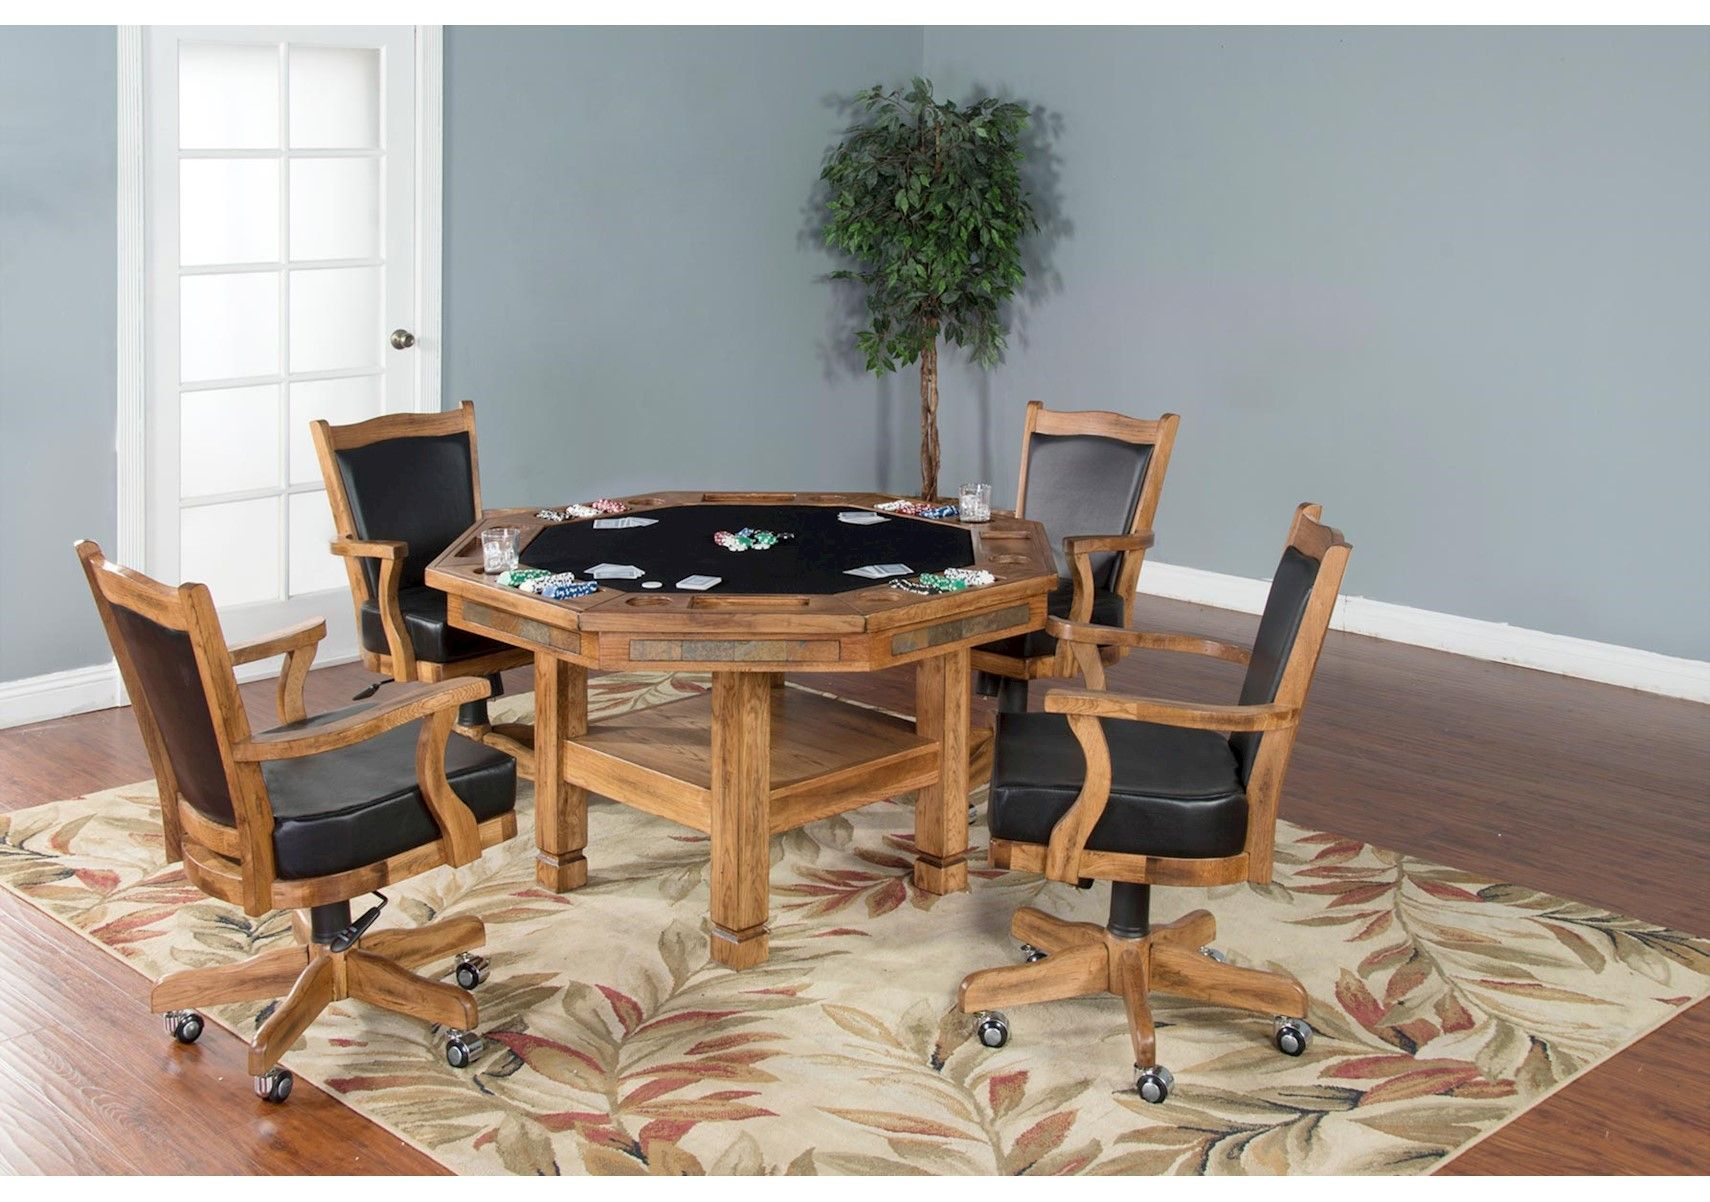 Lacks Santa Fe 5 Pc Game Table Set Rustic Brown Rustic  # Muebles Santa Fe